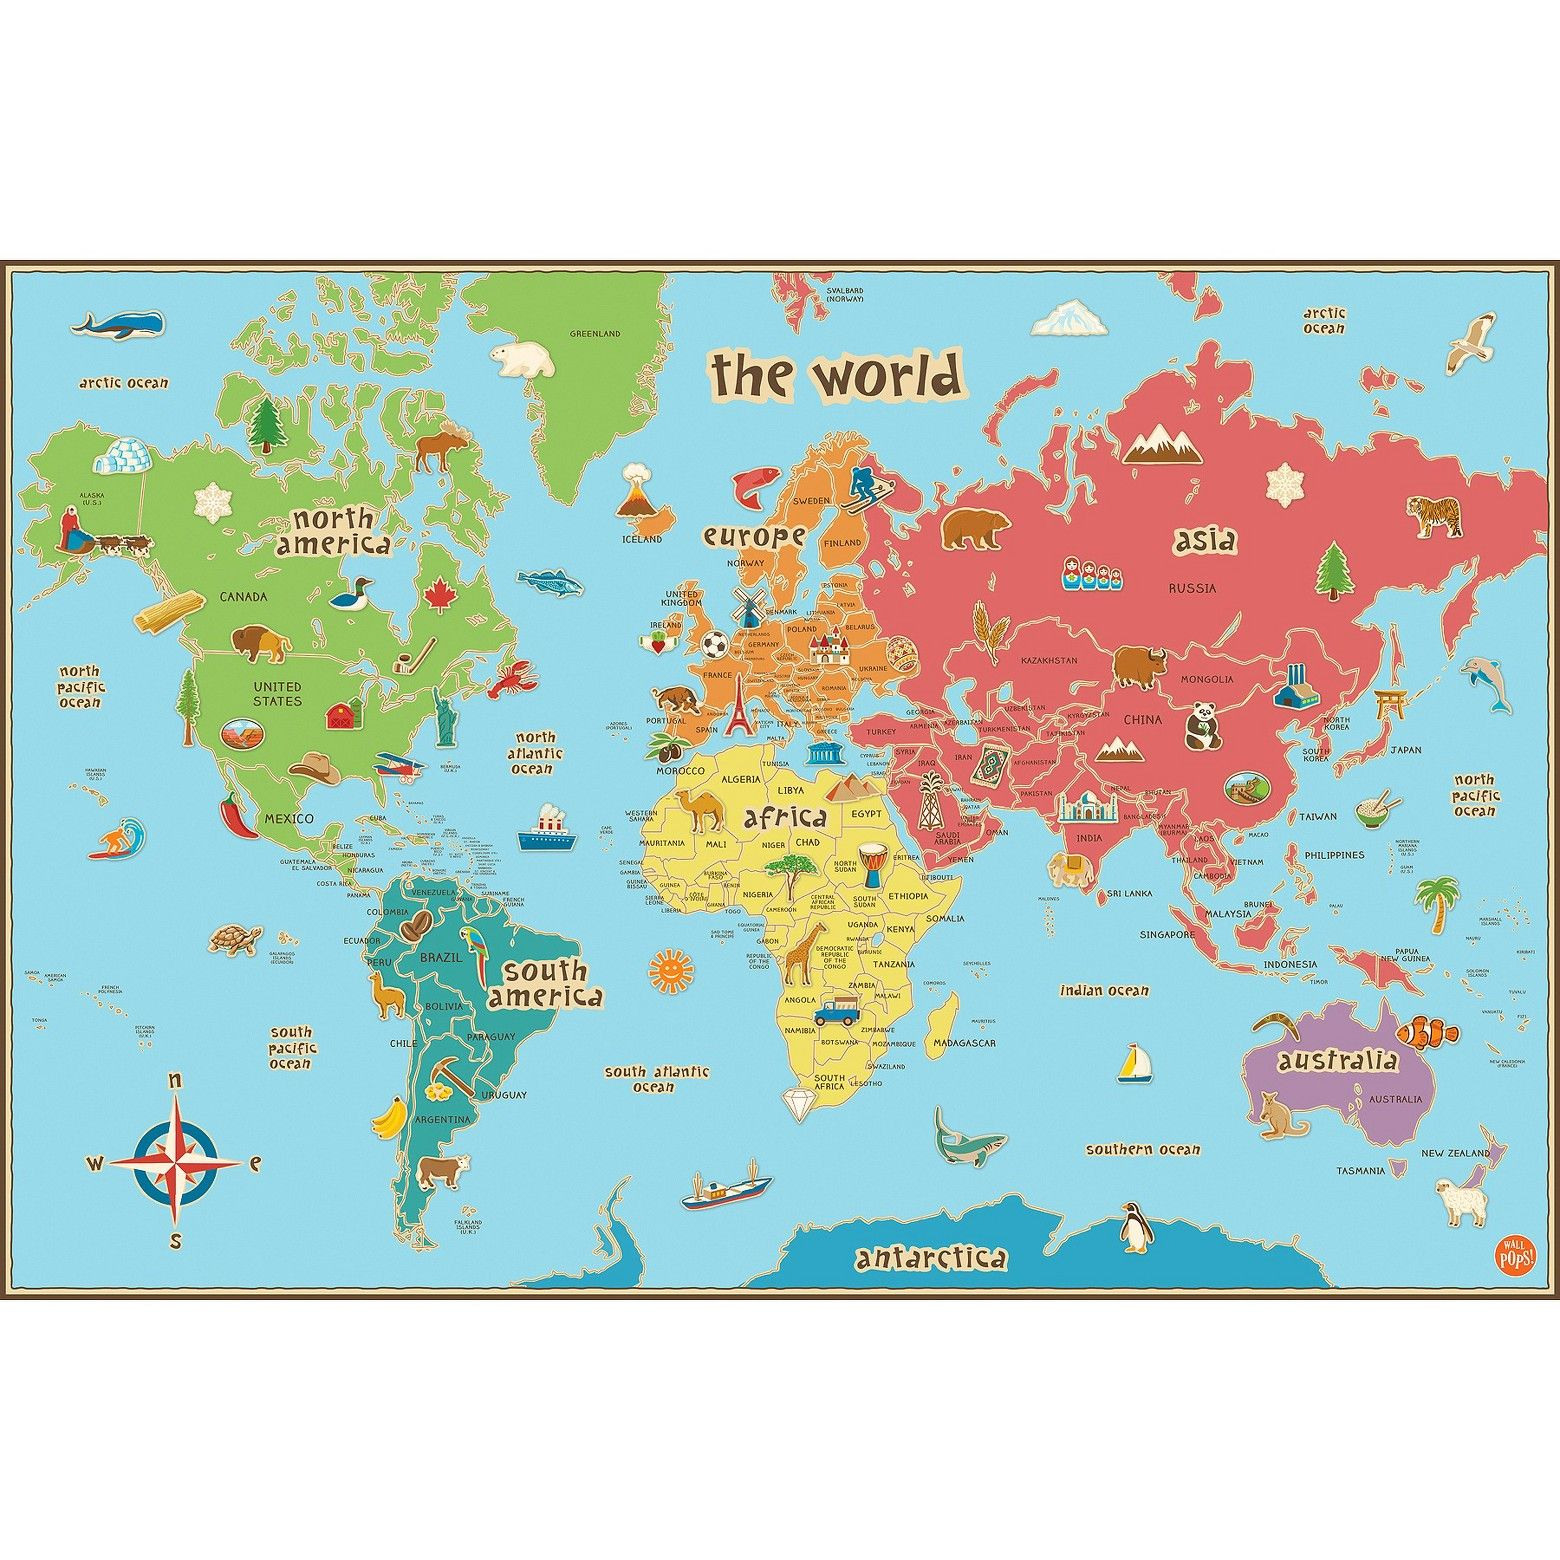 Wallpops kids world map multicolor classroom decor and playrooms this world map is especially suited to kids with fun graphics easy to read tags and bright colors our peel and stick kids world map decal is also gumiabroncs Images